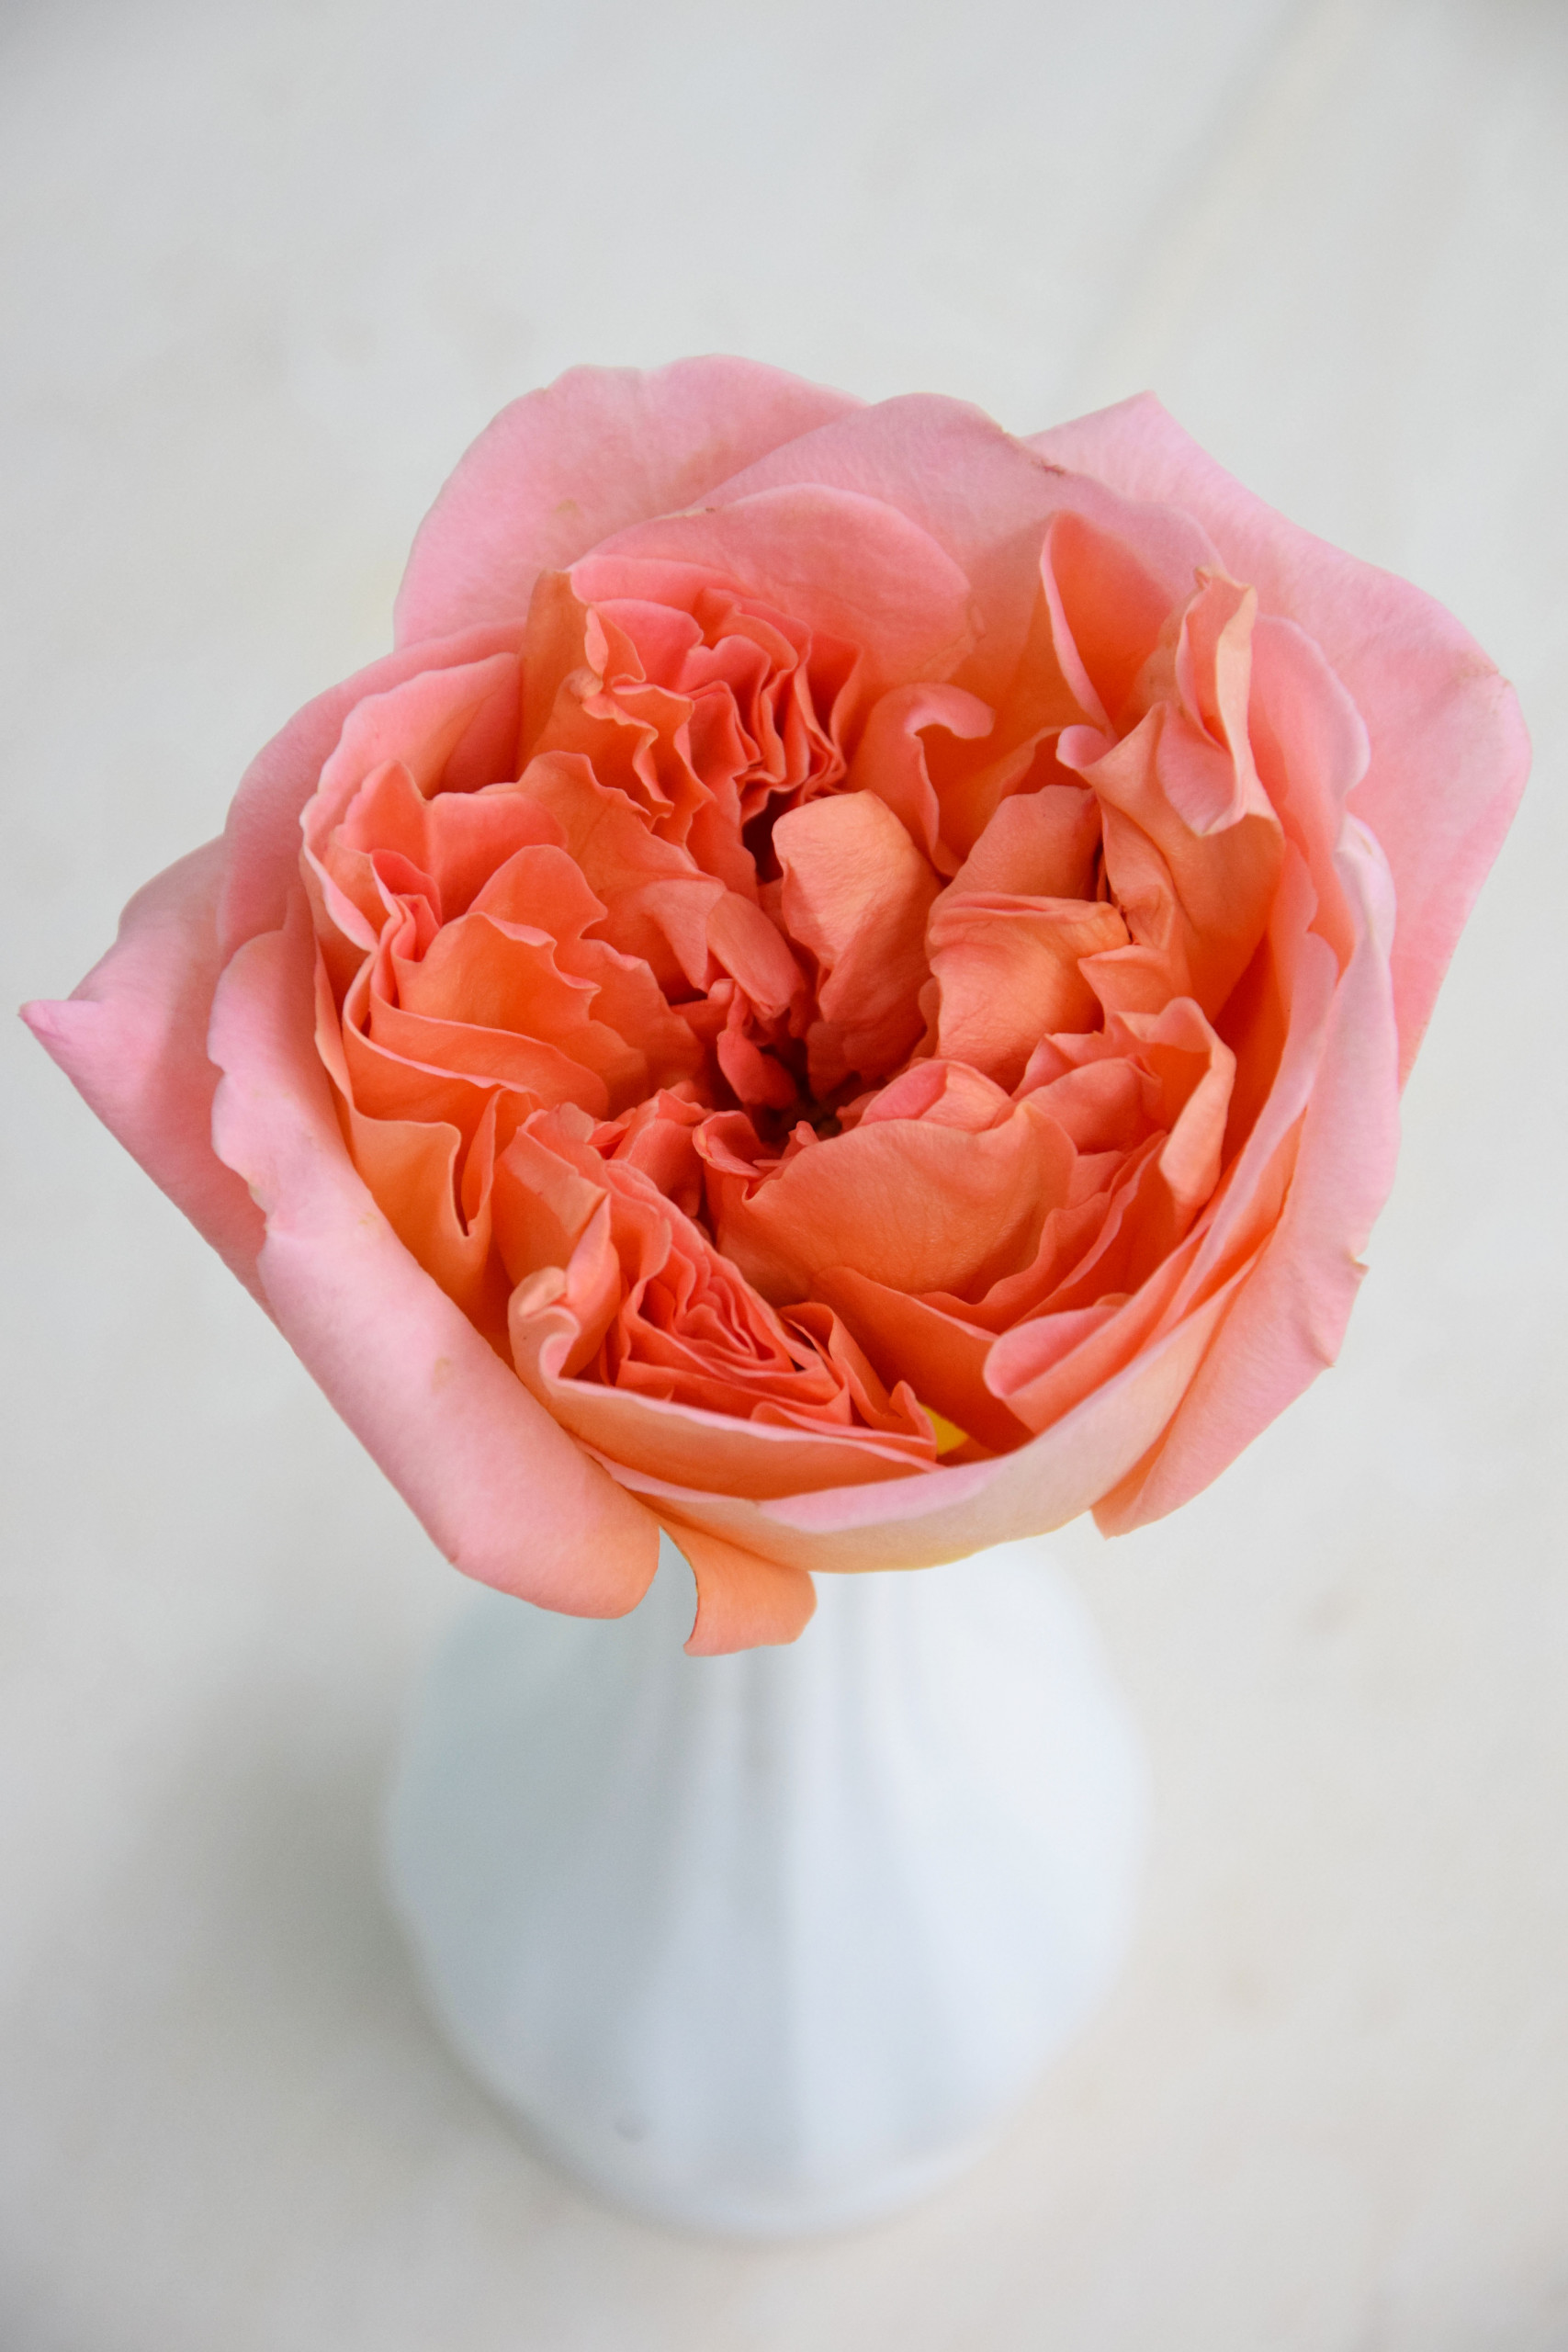 Rene Goscinny is a deeply filled garden rose with a light apricot perfume. Each rose is a little different in color from one another. Sometimes a little darker peach in the center, sometimes more to mango orange color.